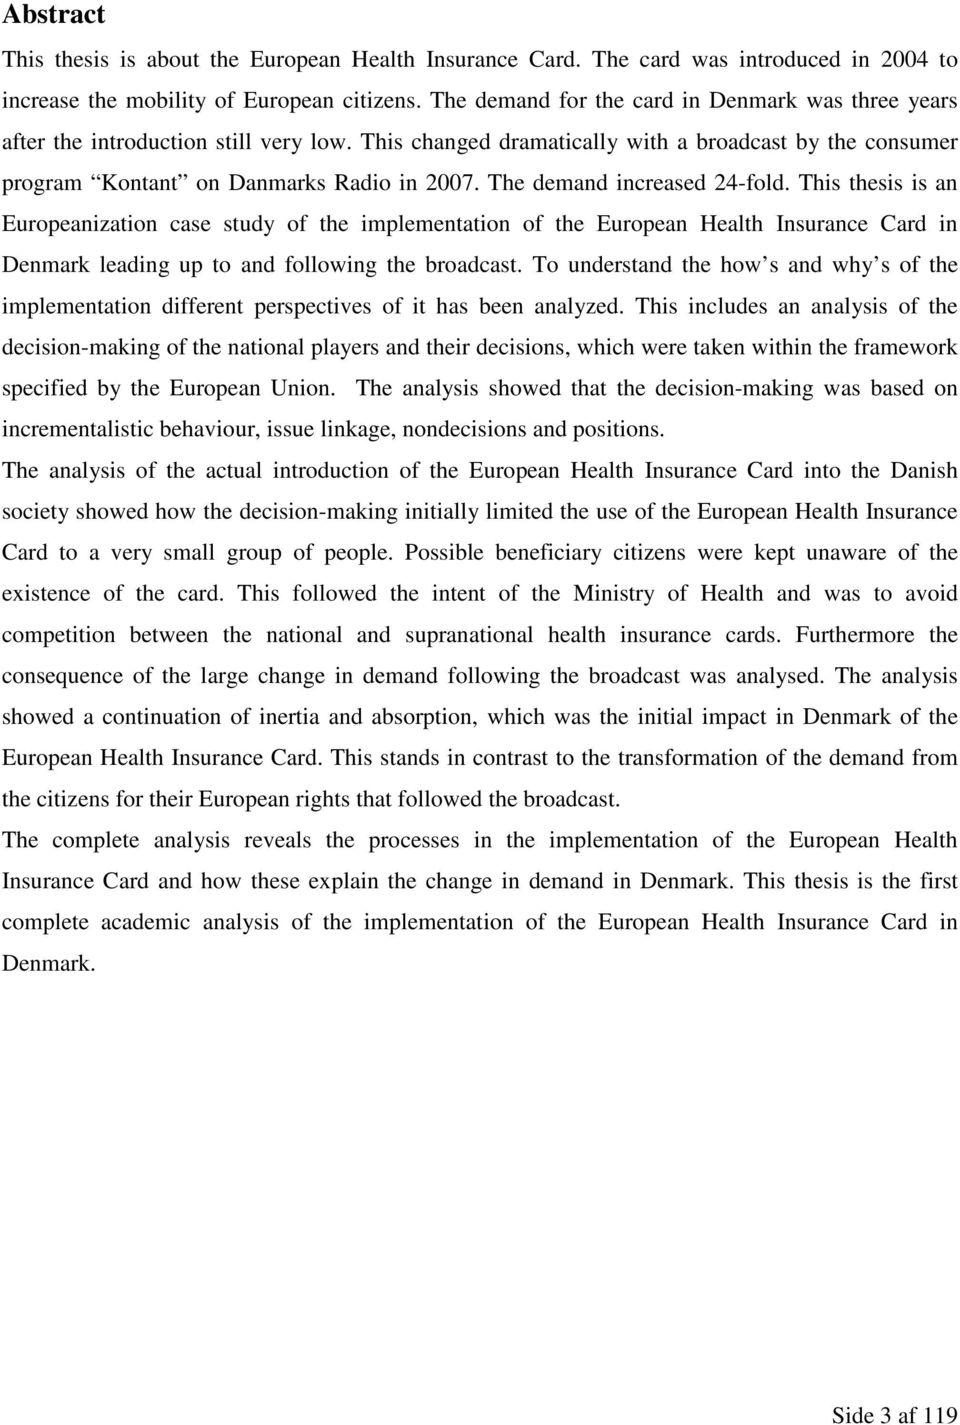 The demand increased 24-fold. This thesis is an Europeanization case study of the implementation of the European Health Insurance Card in Denmark leading up to and following the broadcast.